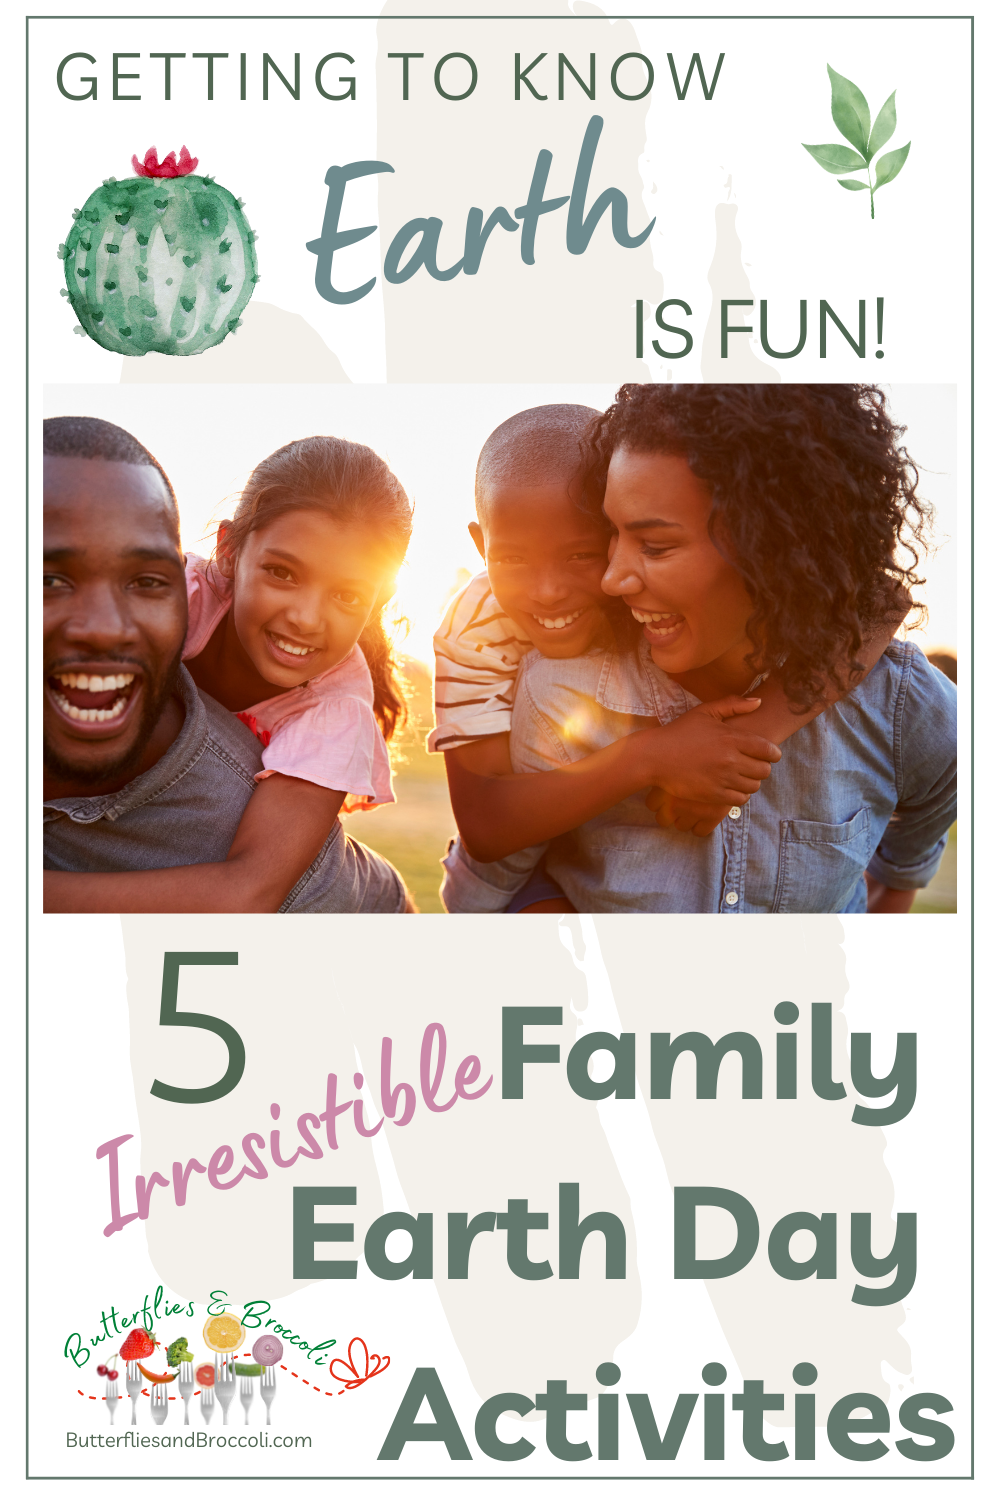 Image of family of 4 smiling and hugging with text 5 irresistible family earth day activities